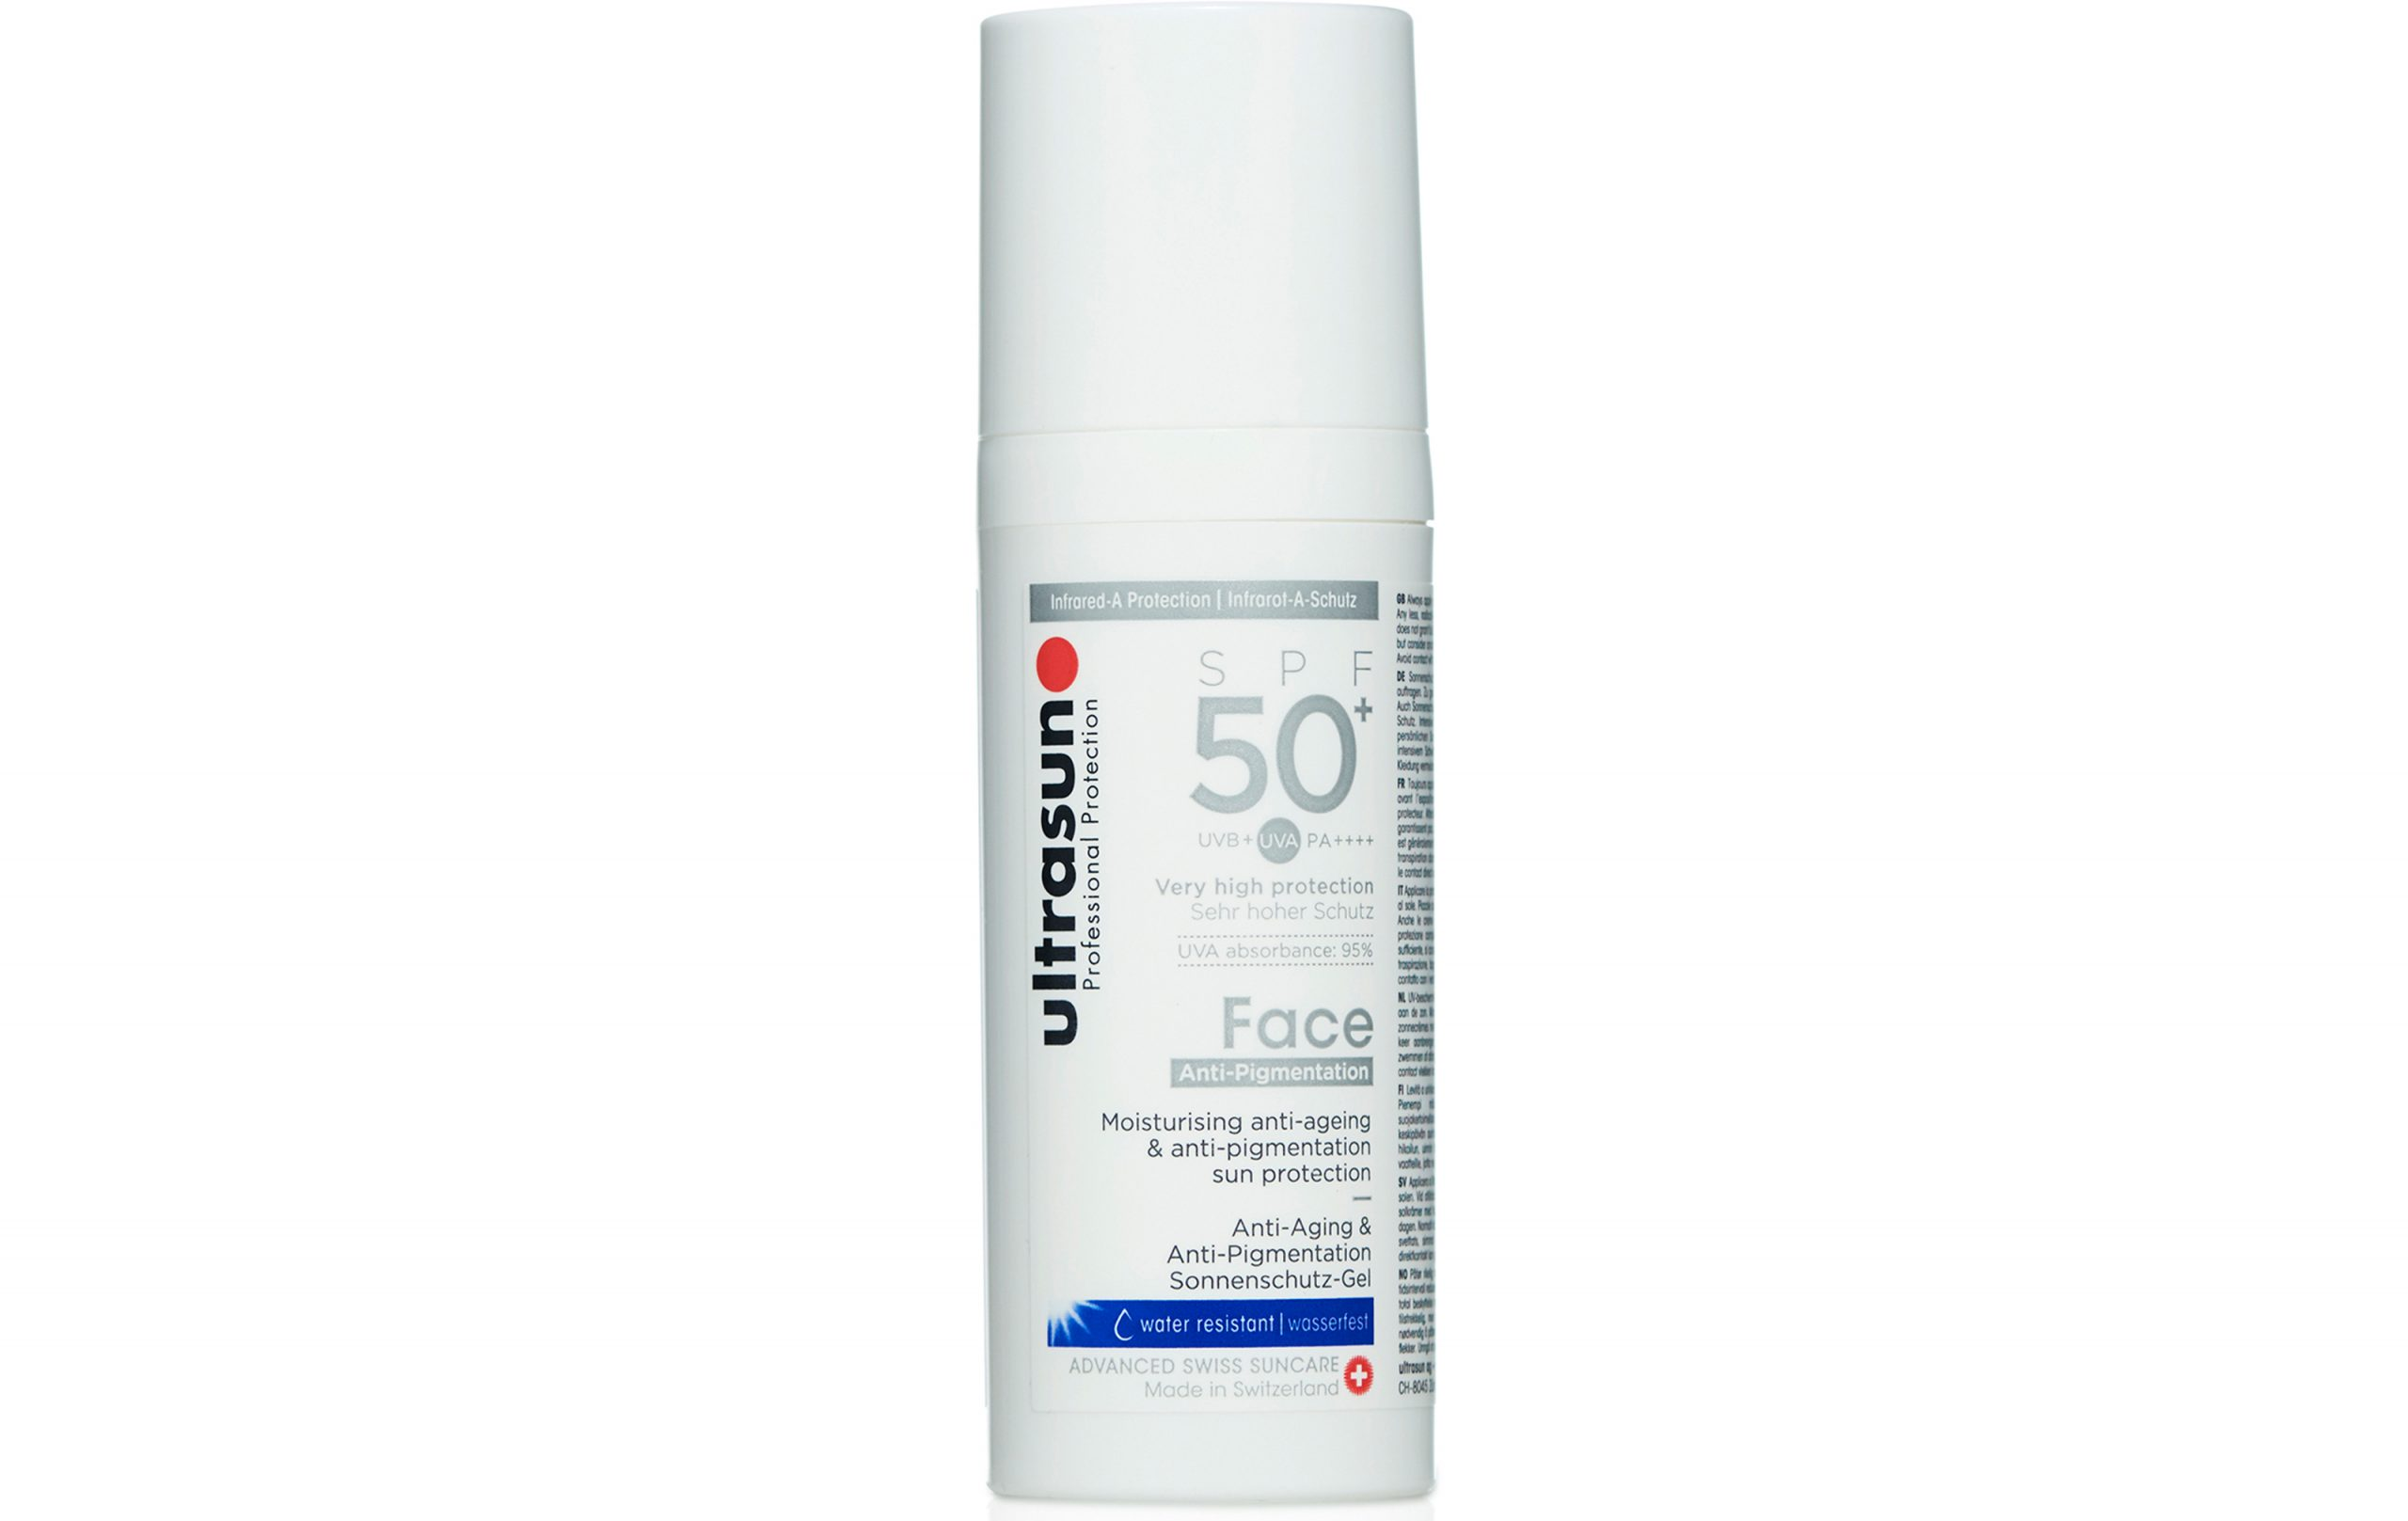 Everything you need to know about sunscreen on staycation, ab3237aa 8efe 4d4b 9b0d c0d330d5a1ad scaled%, daily-dad, health%